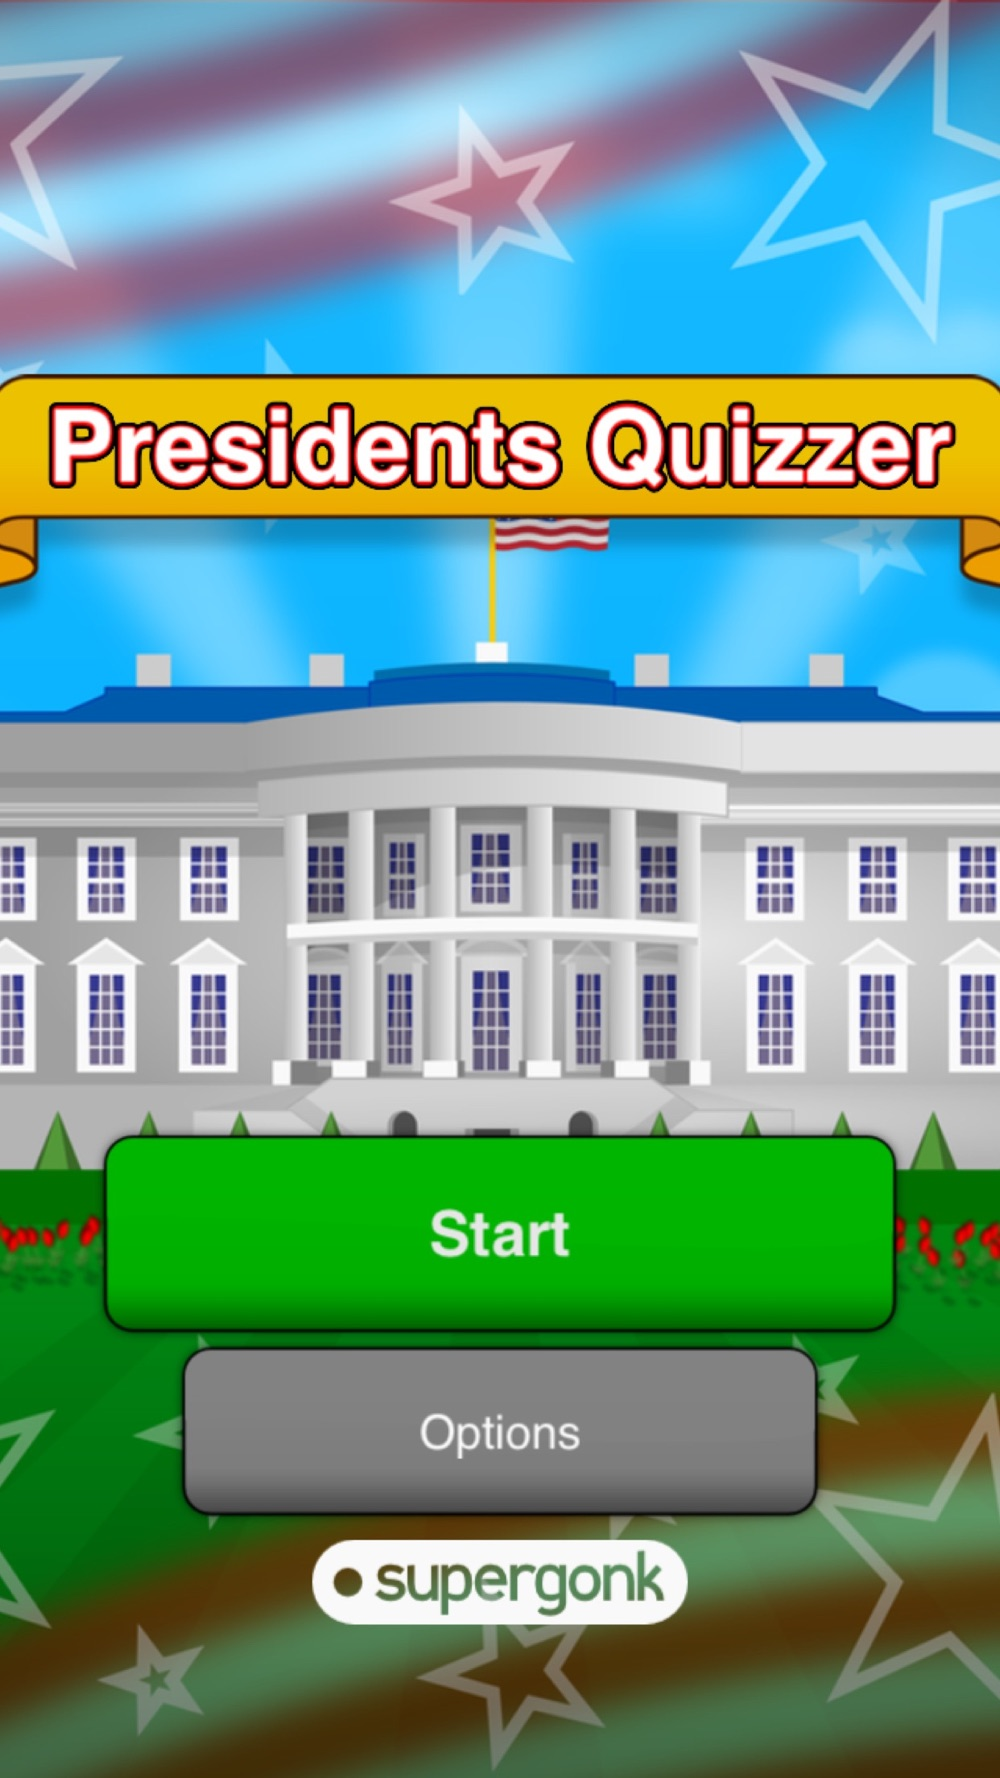 Presidents Quizzer hack tool